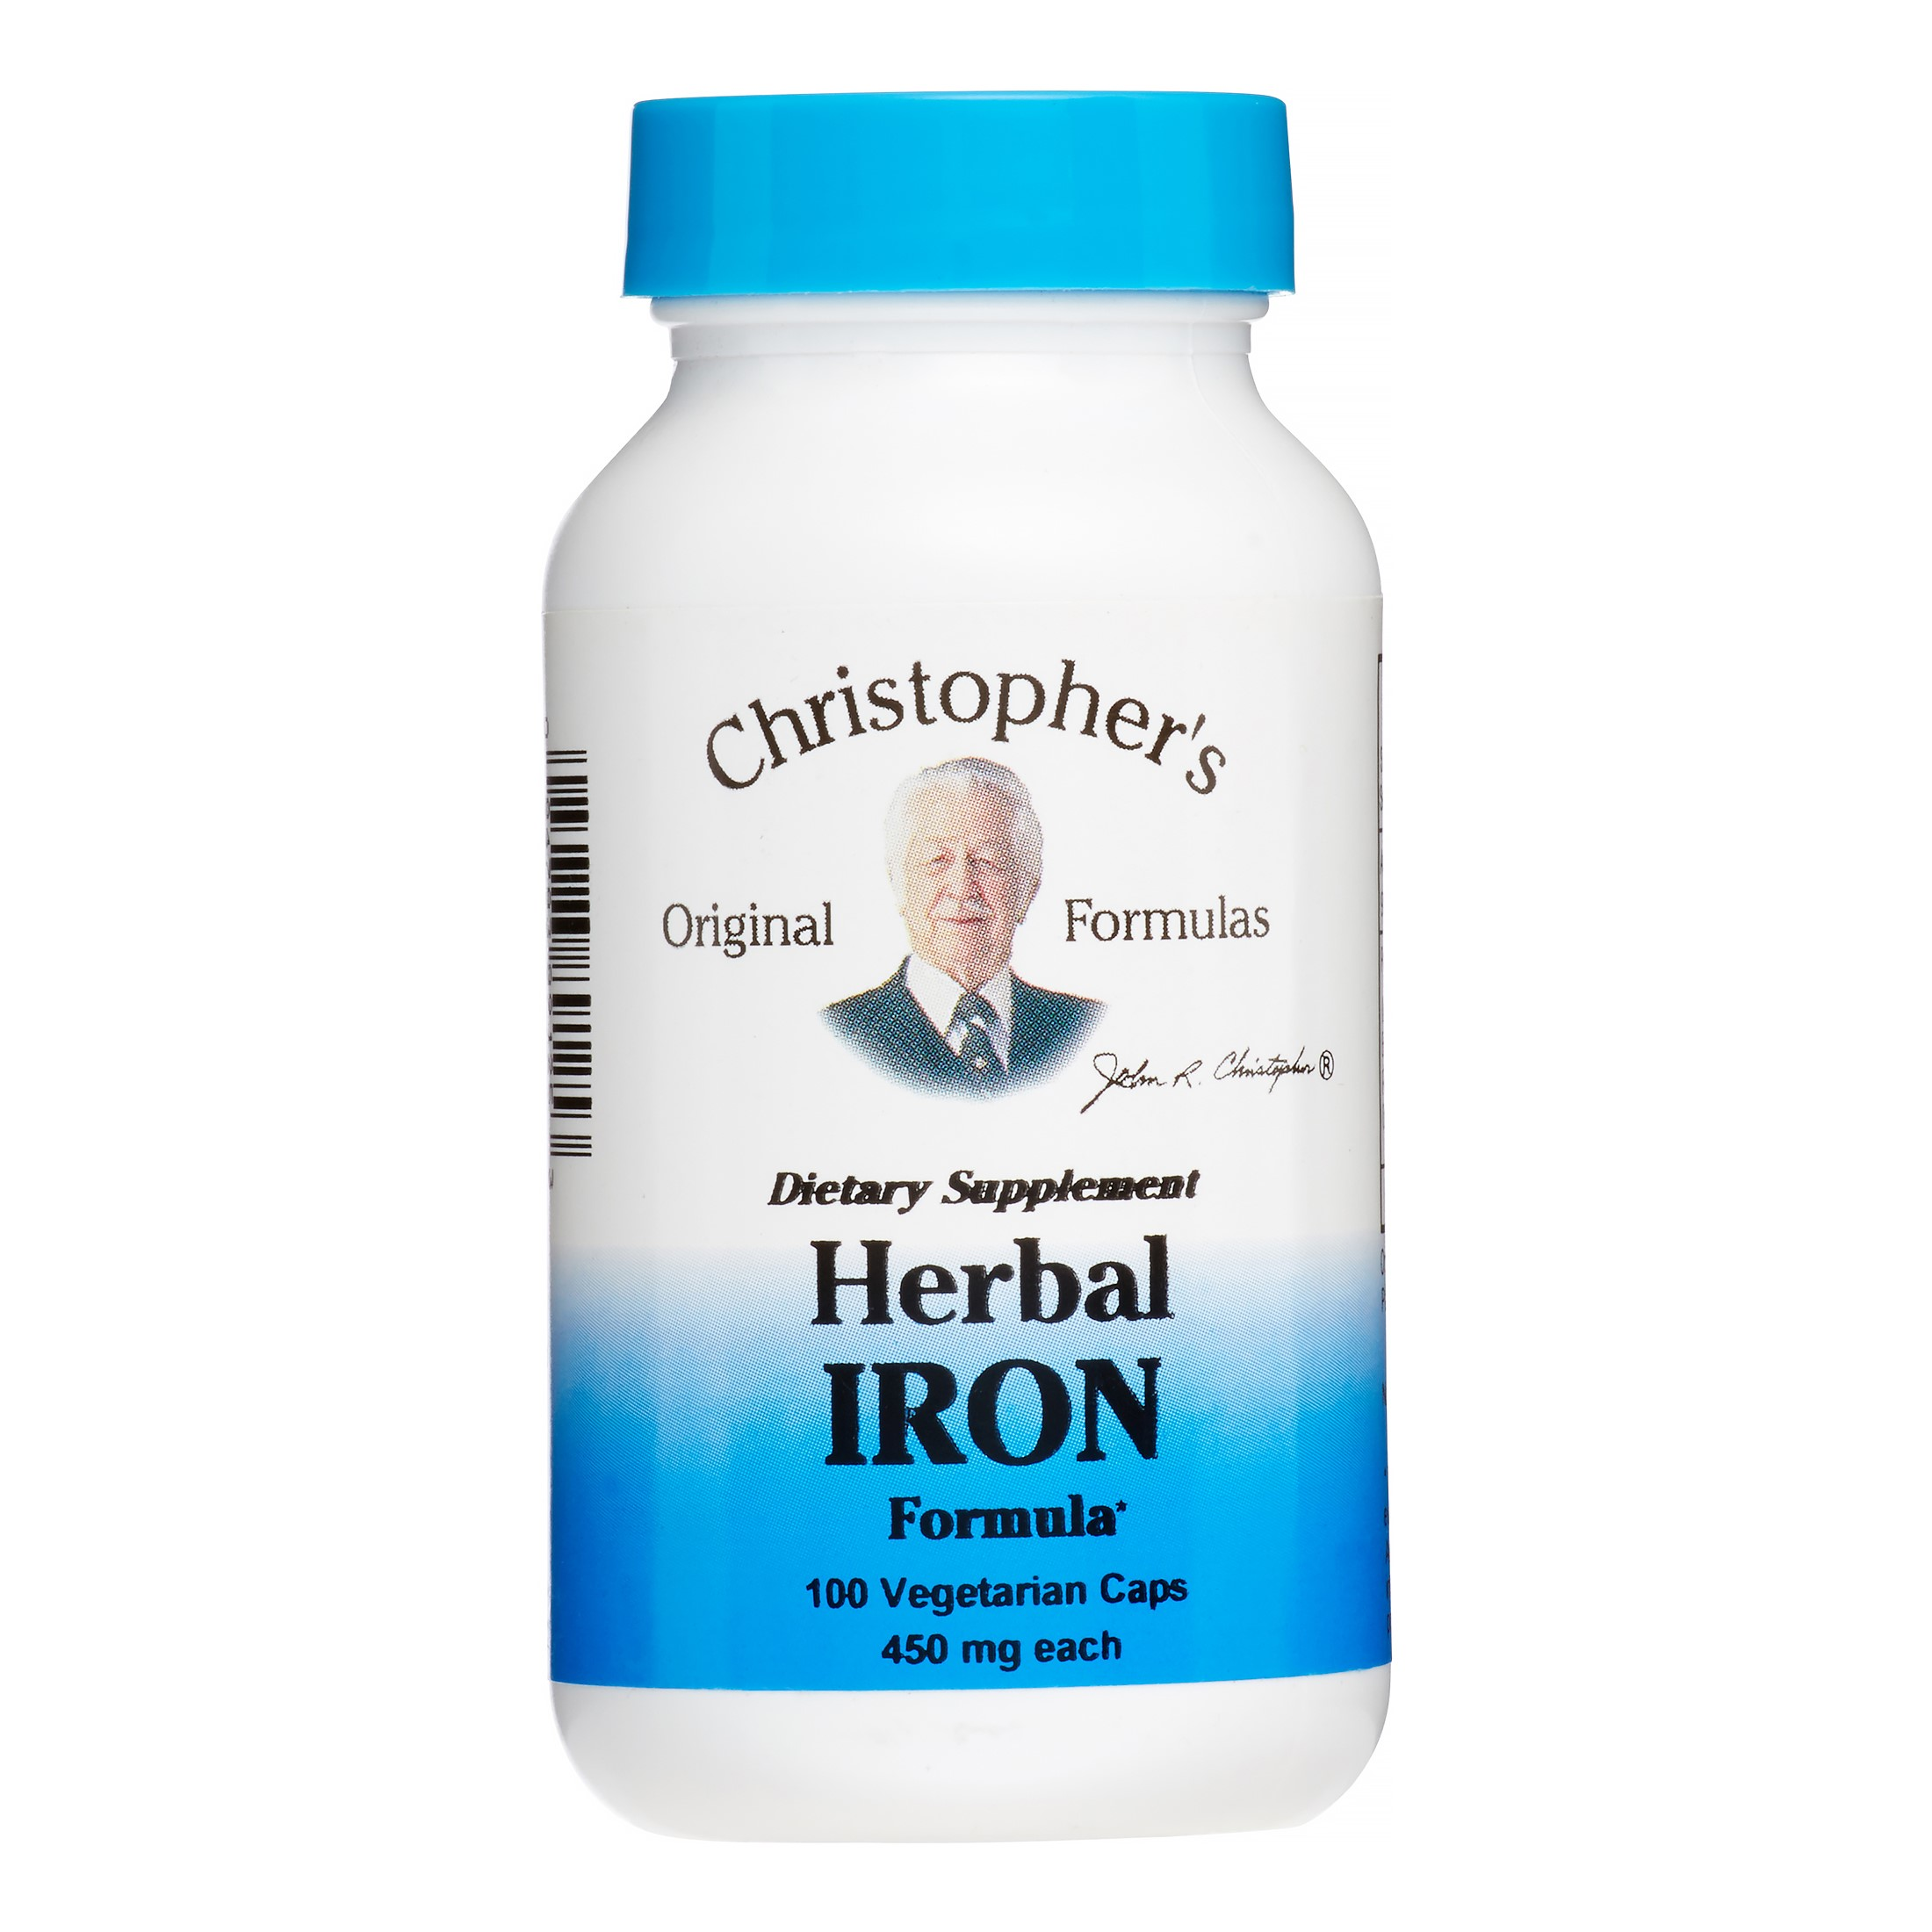 Christopher's Original Formulas Herbal Iron Formula, 100 Ct